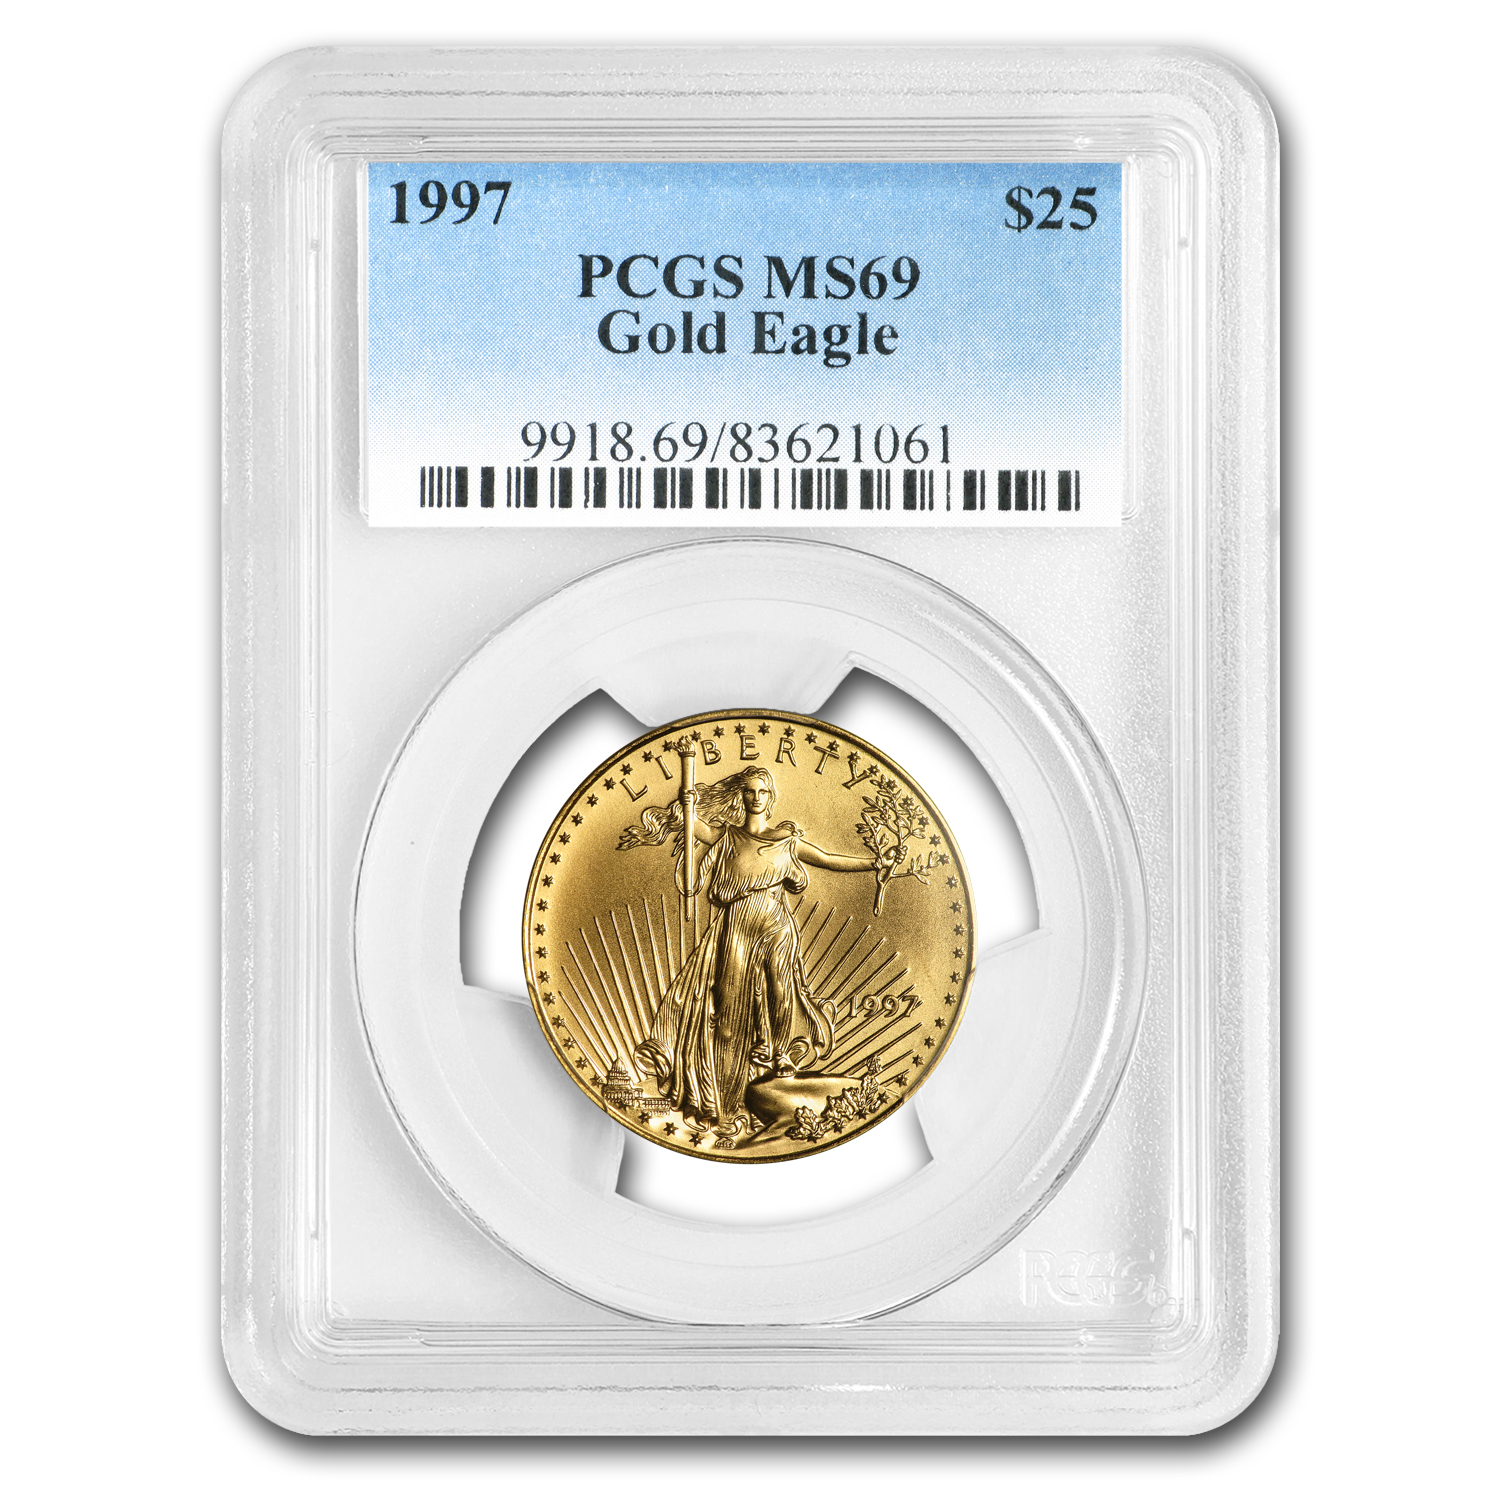 1997 1/2 oz Gold American Eagle MS-69 PCGS